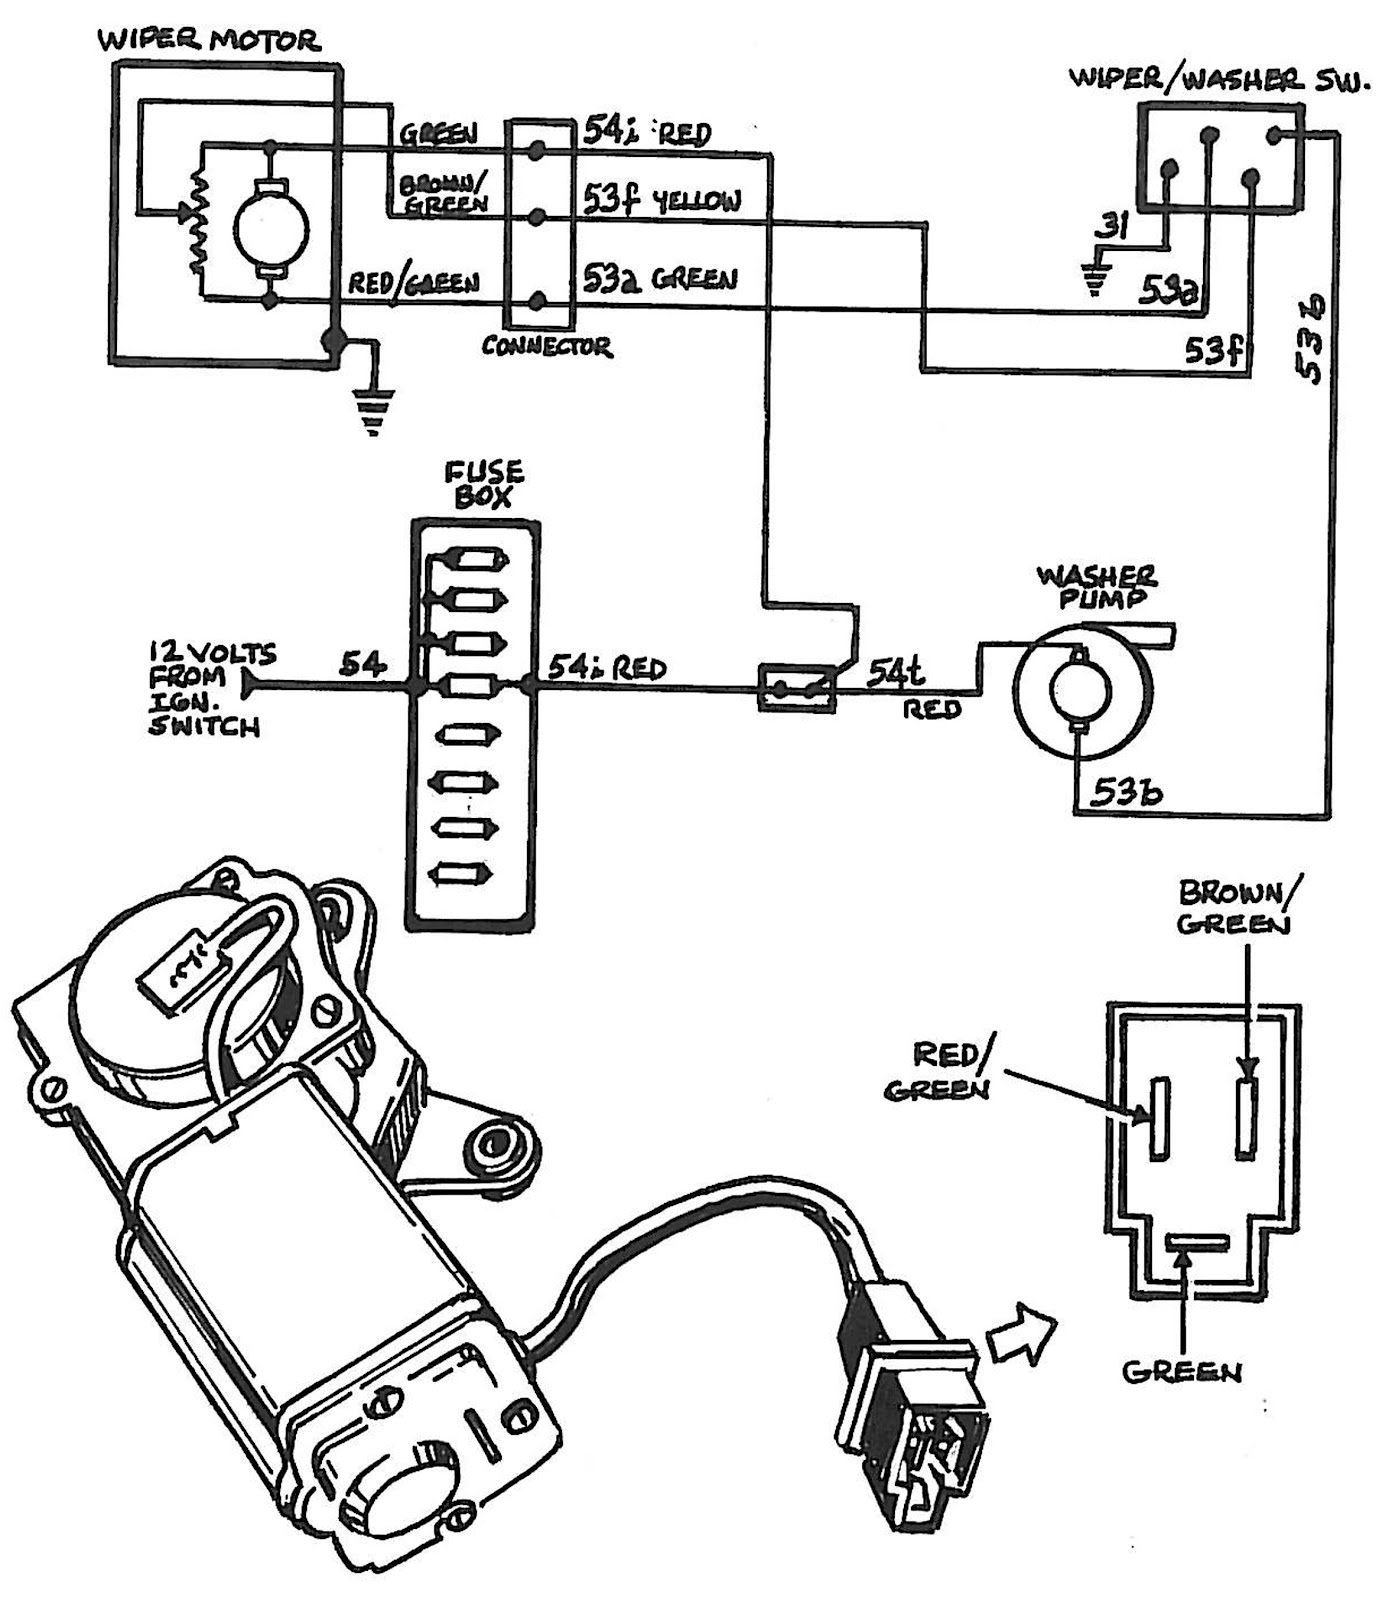 2000 Ford Windstar Wiring Diagram Manual, 2000, Free